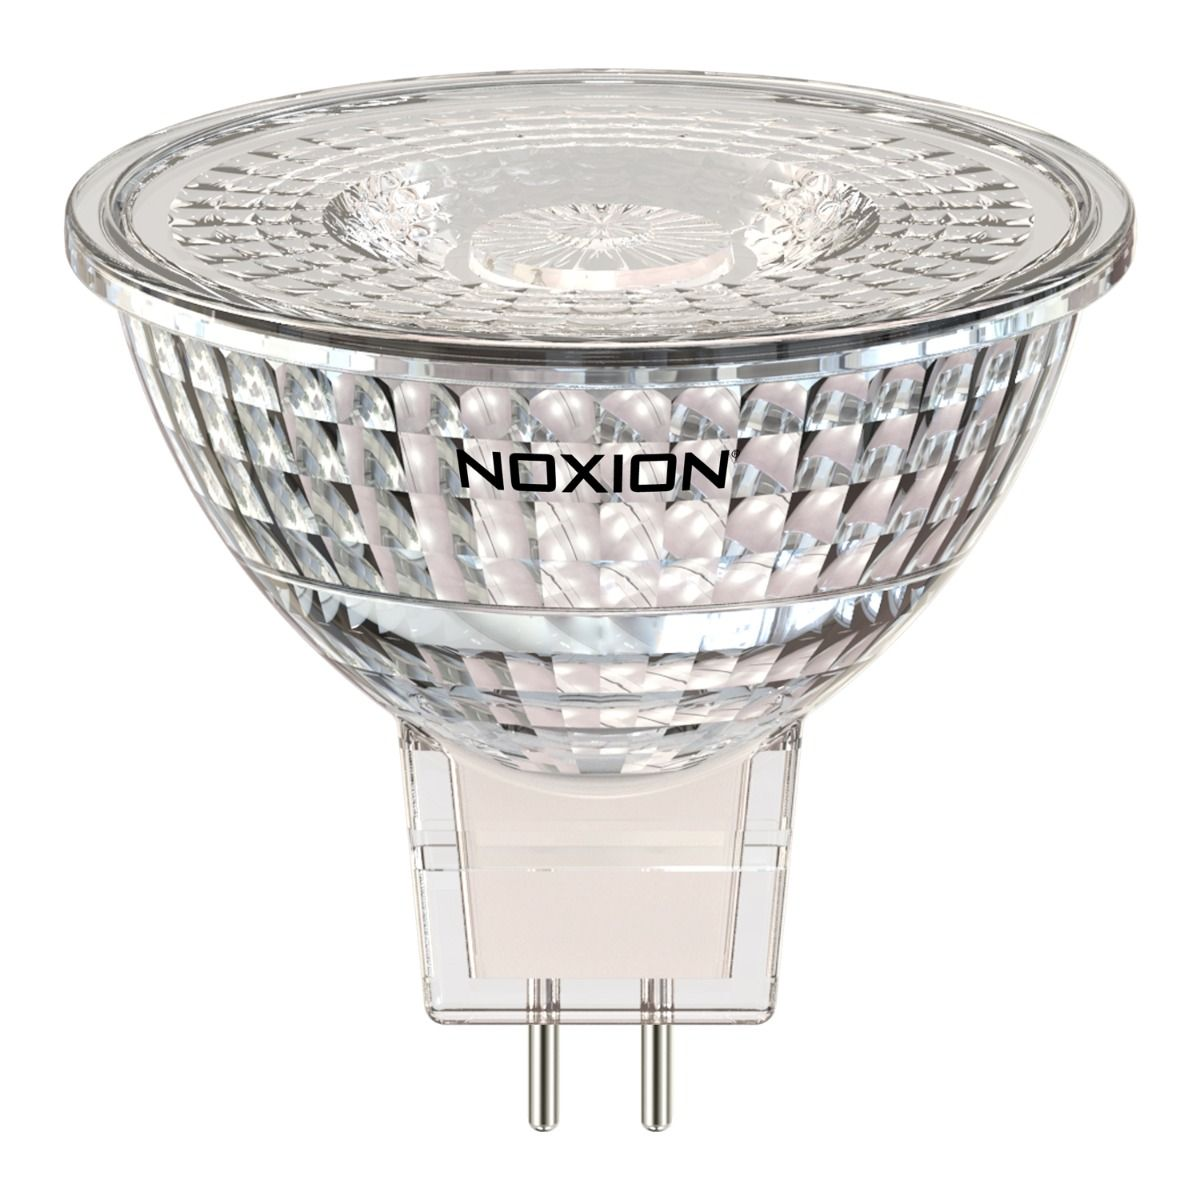 Noxion LED Spot GU5.3 5W 827 36D 470lm | Dimmable - Replacer for 35W